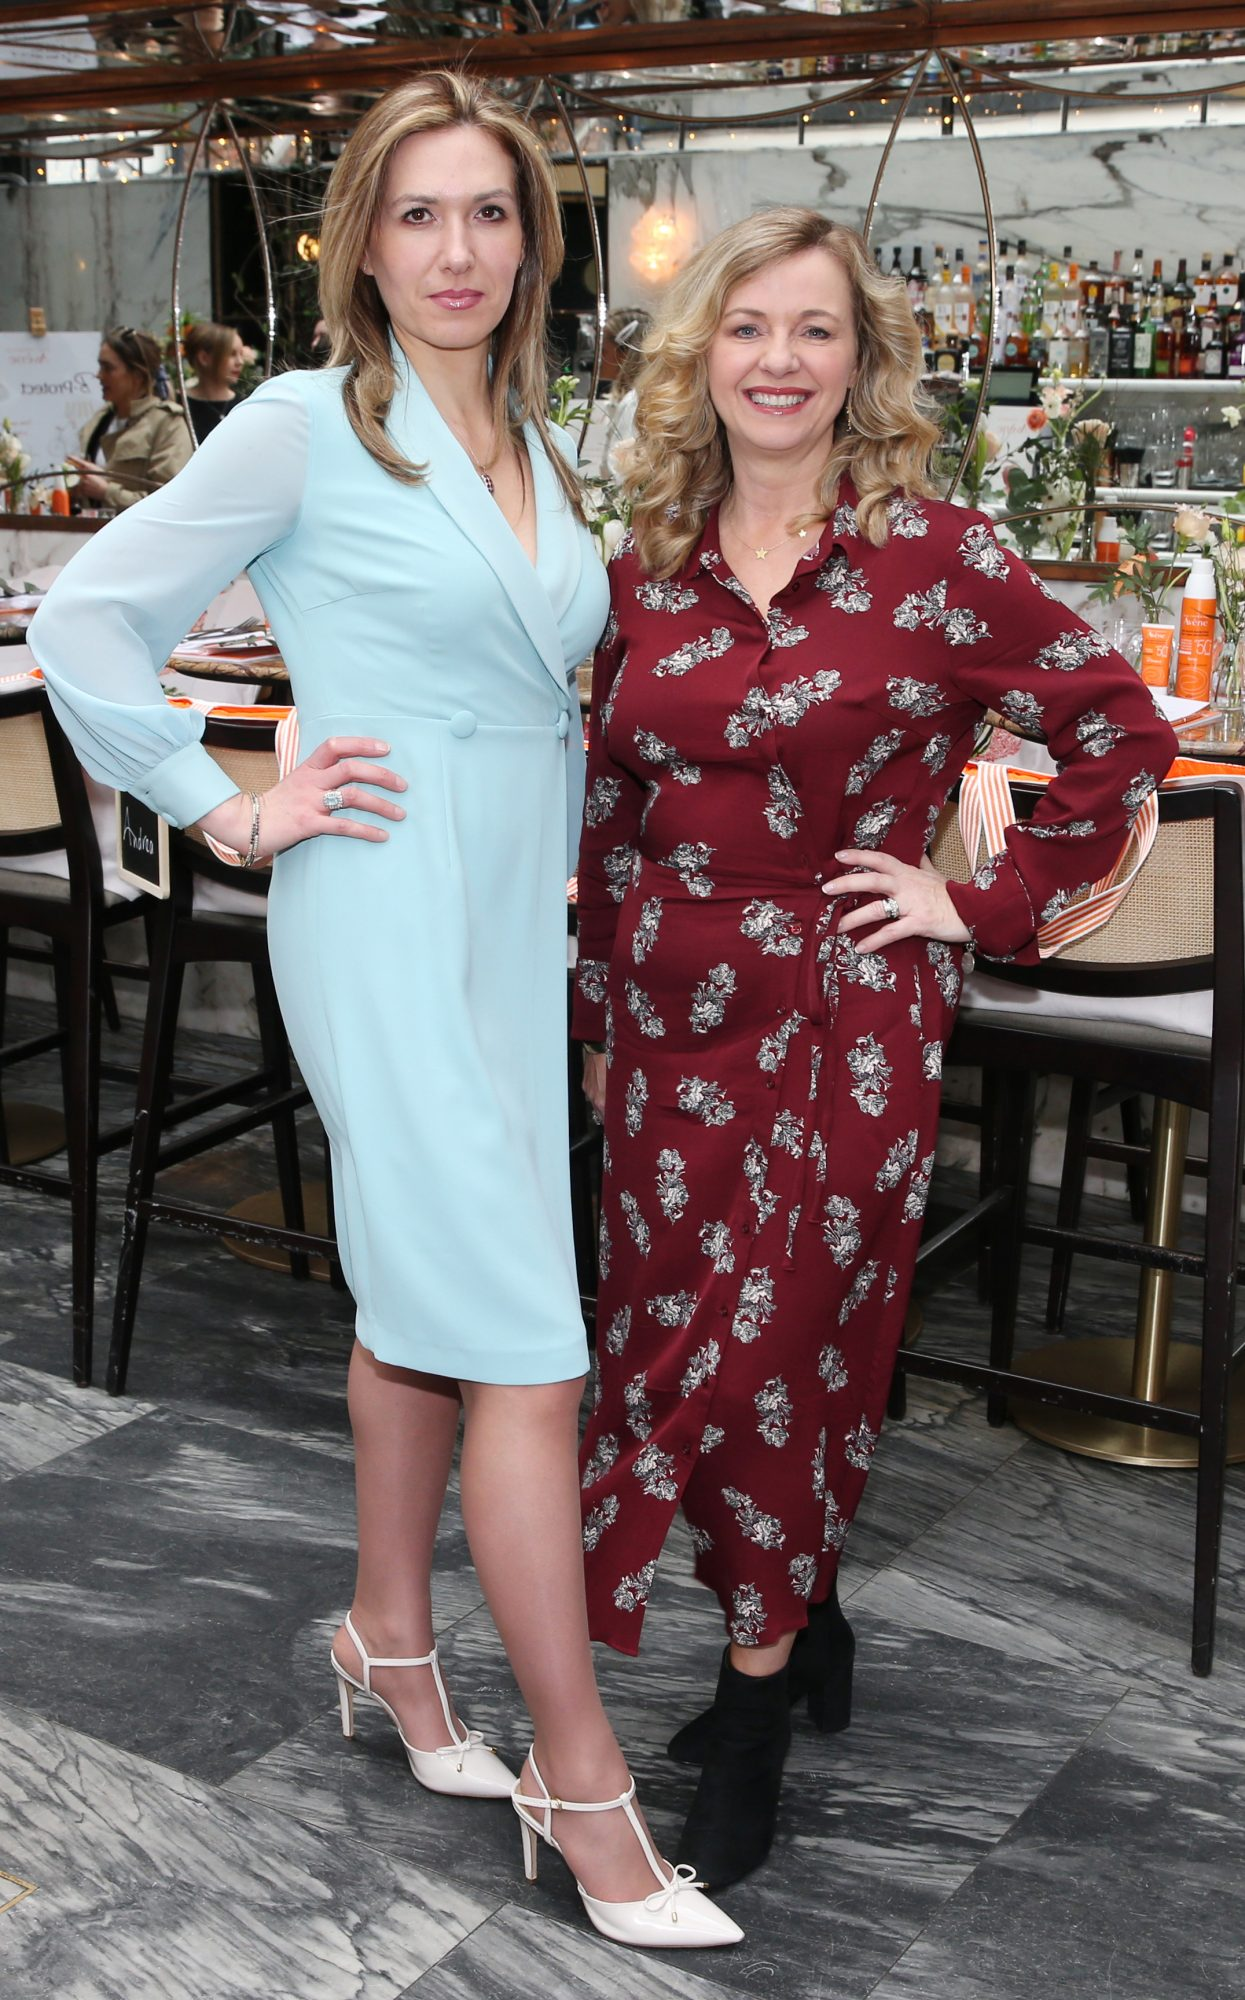 Pictured is Laura Dowling and Denise Cantwell at the launch of the new Avène Expert Suncare Range in The Grayson Dublin. The new range of suncare from the French brand is suitable for all skin types and includes a Sports Sun Cream, a City Shield BB Style High Protection Face Cream, two new SPF Body Sprays and a new Very High Protection Children's SPF. For more information visit www.avene.ie. Photo: Leon Farrell/Photocall Ireland.